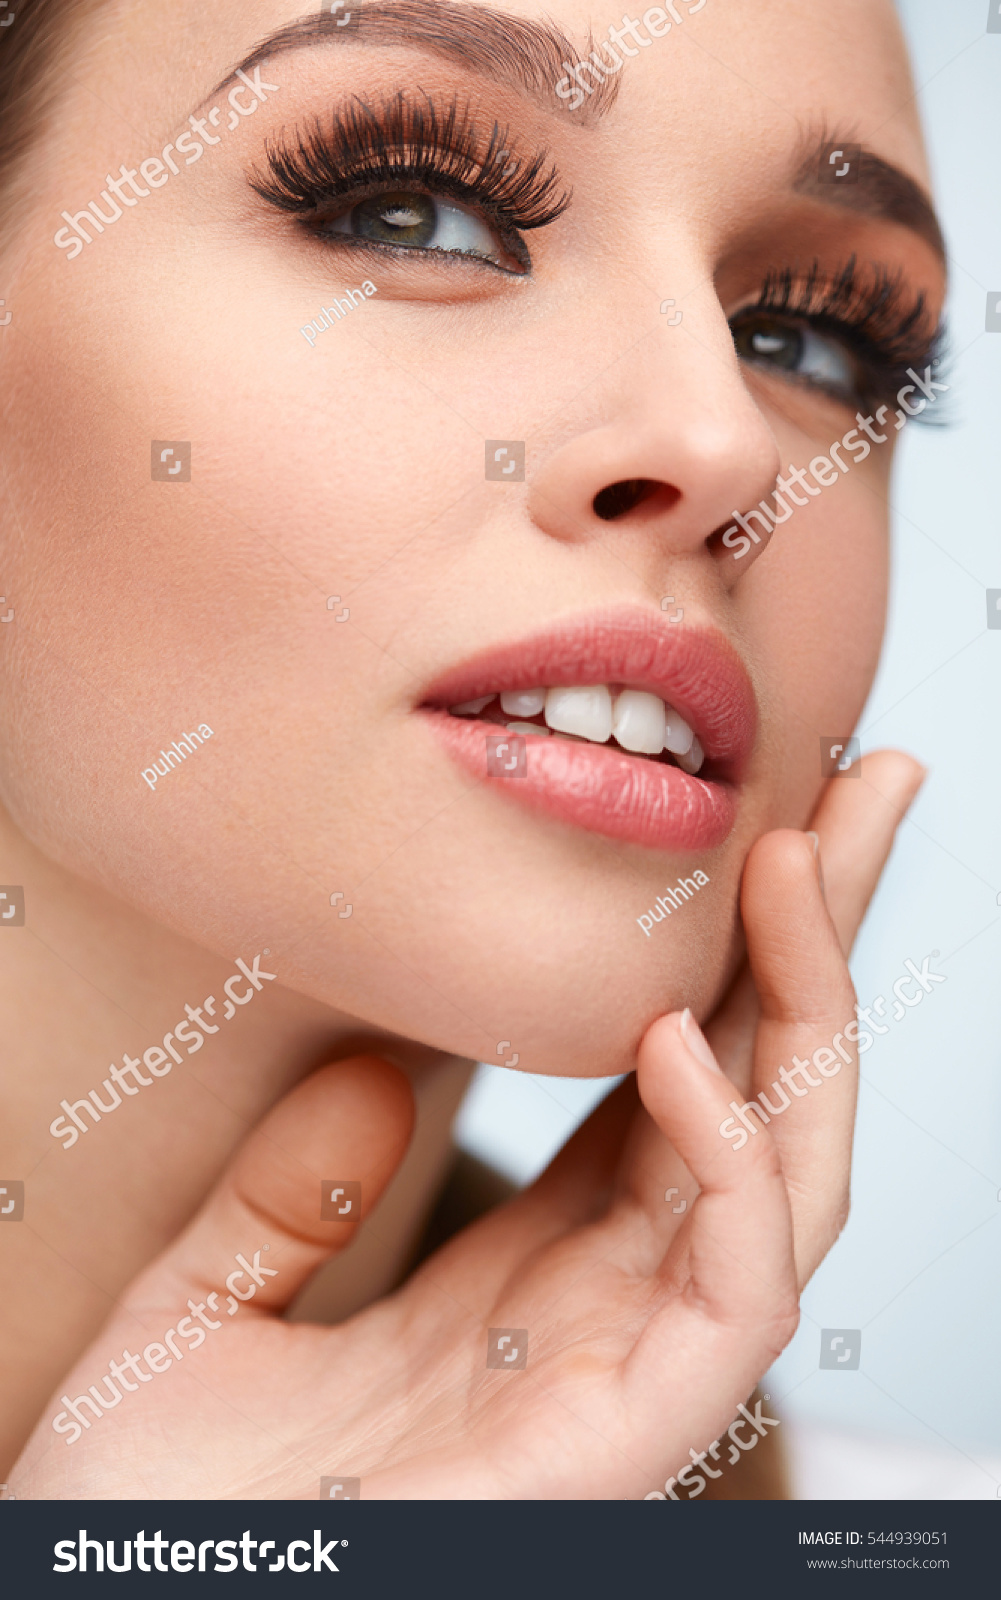 e6539f9b21f Closeup Of Young Female Model With Long Black Thick Fake Eyelashes, False  Eye Lashes. High Resolution. Royalty Free Stock ...